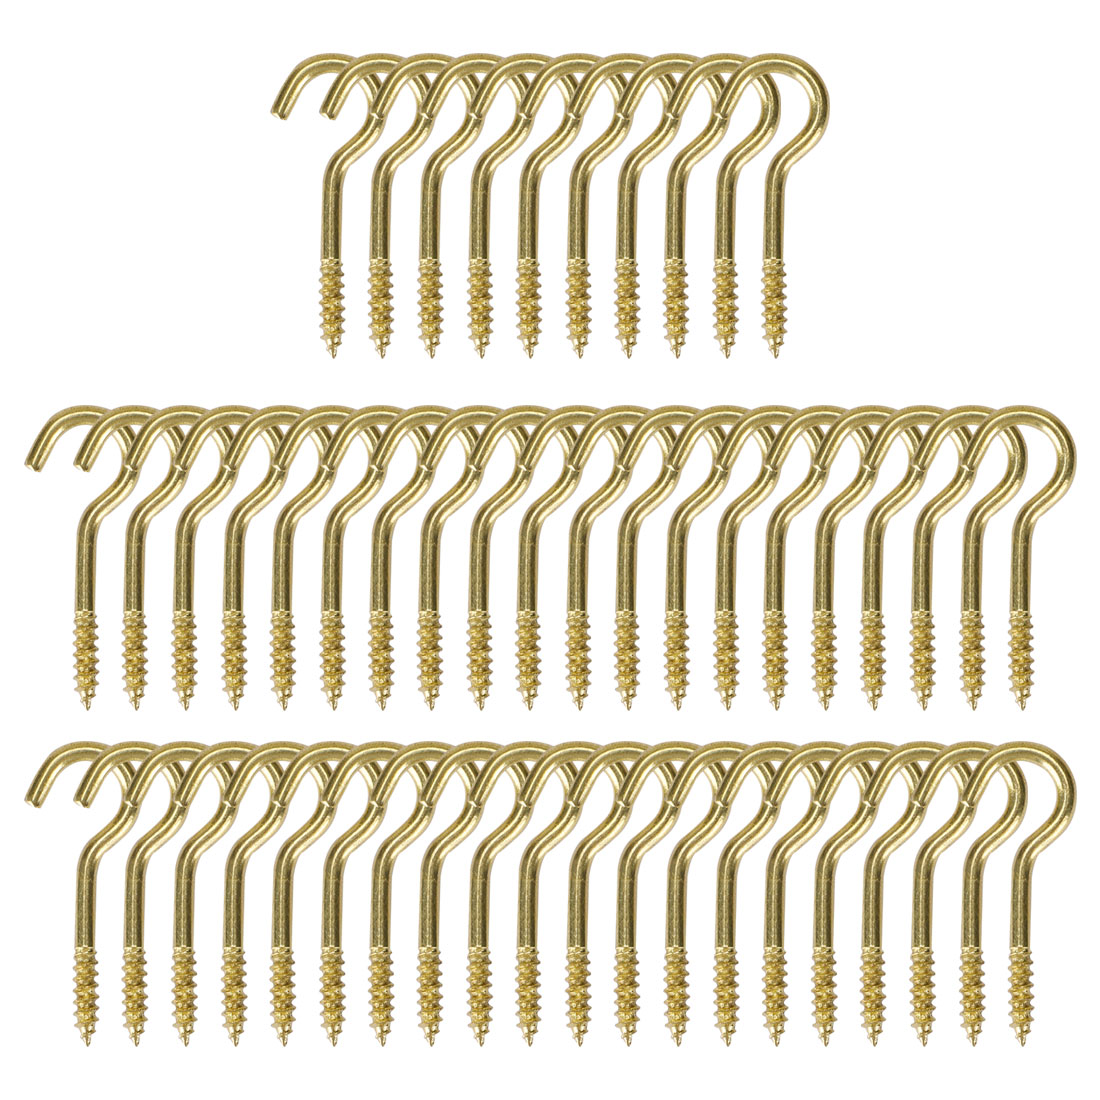 50pcs Cup Ceiling Hooks 5/8 Inch Durable Metal Screw in Hanger Hooks Gold Tone